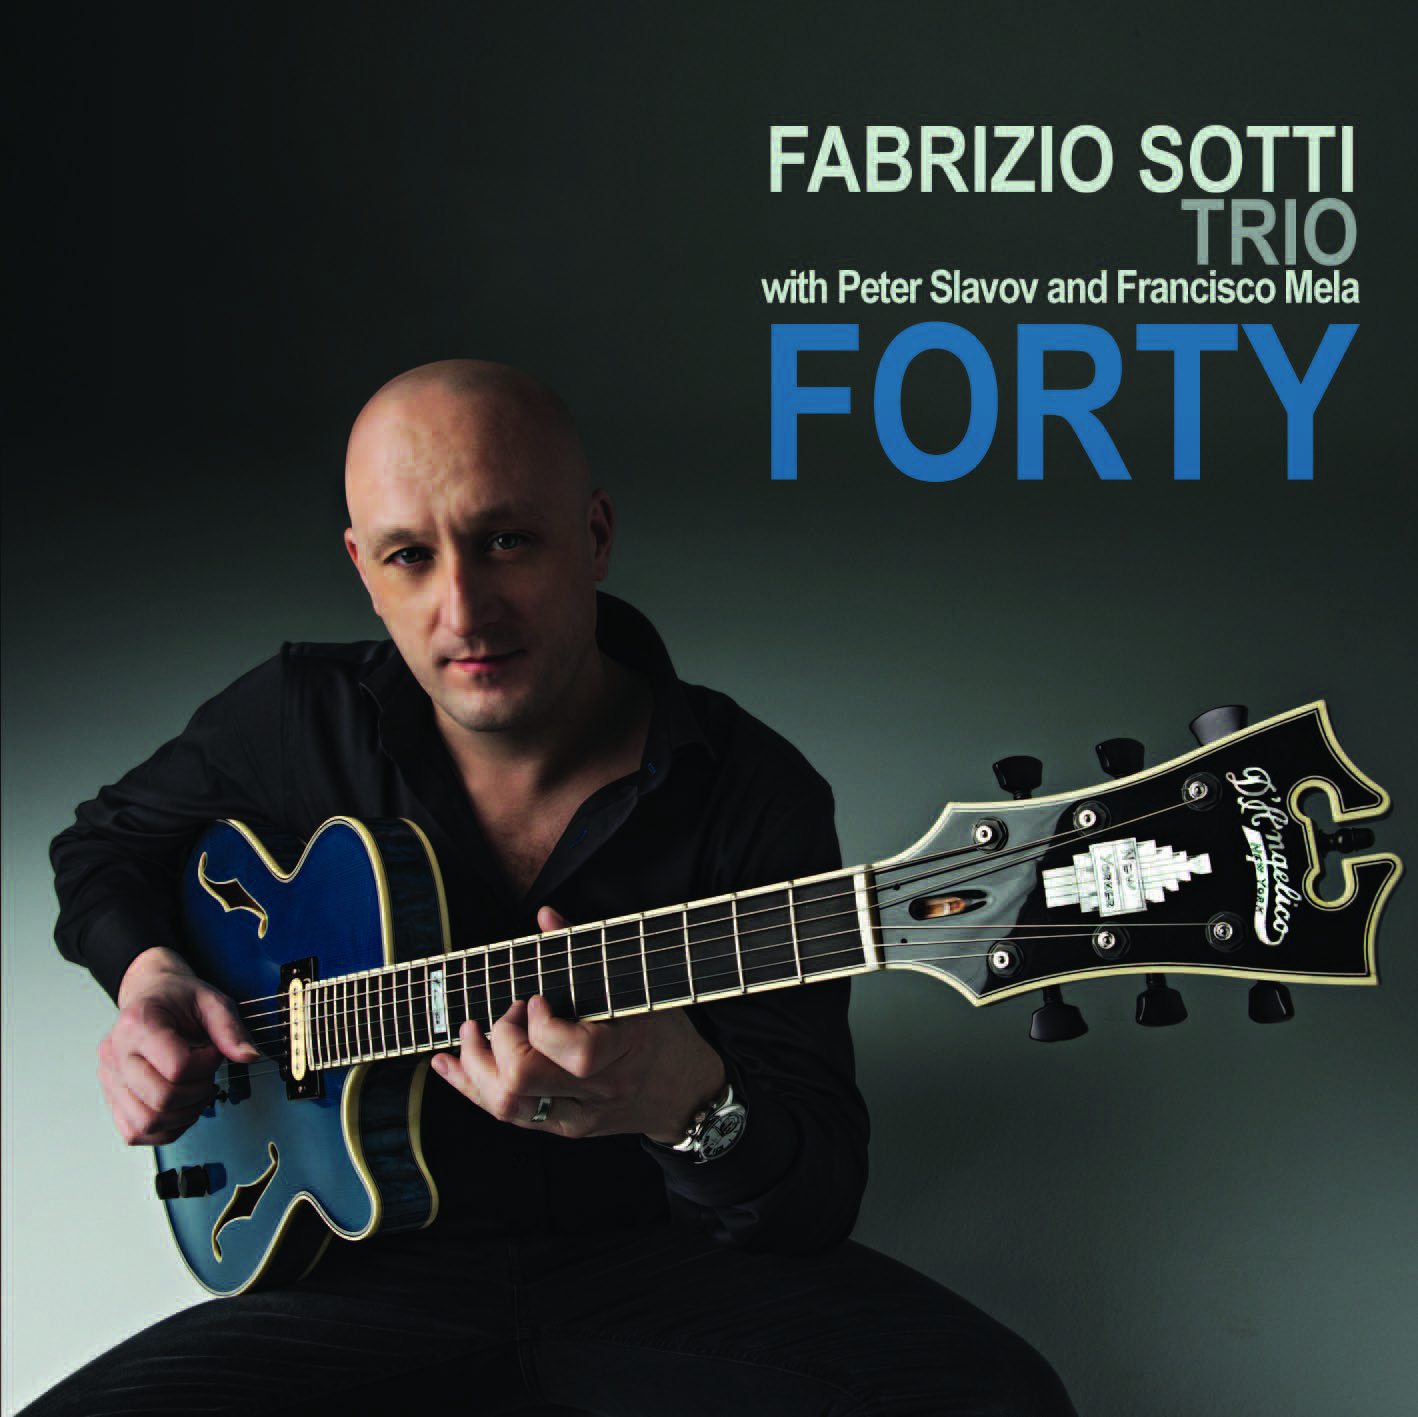 James Nadal of All About Jazz Gives Fabrizio Sotti's 'Forty' 4 Stars!